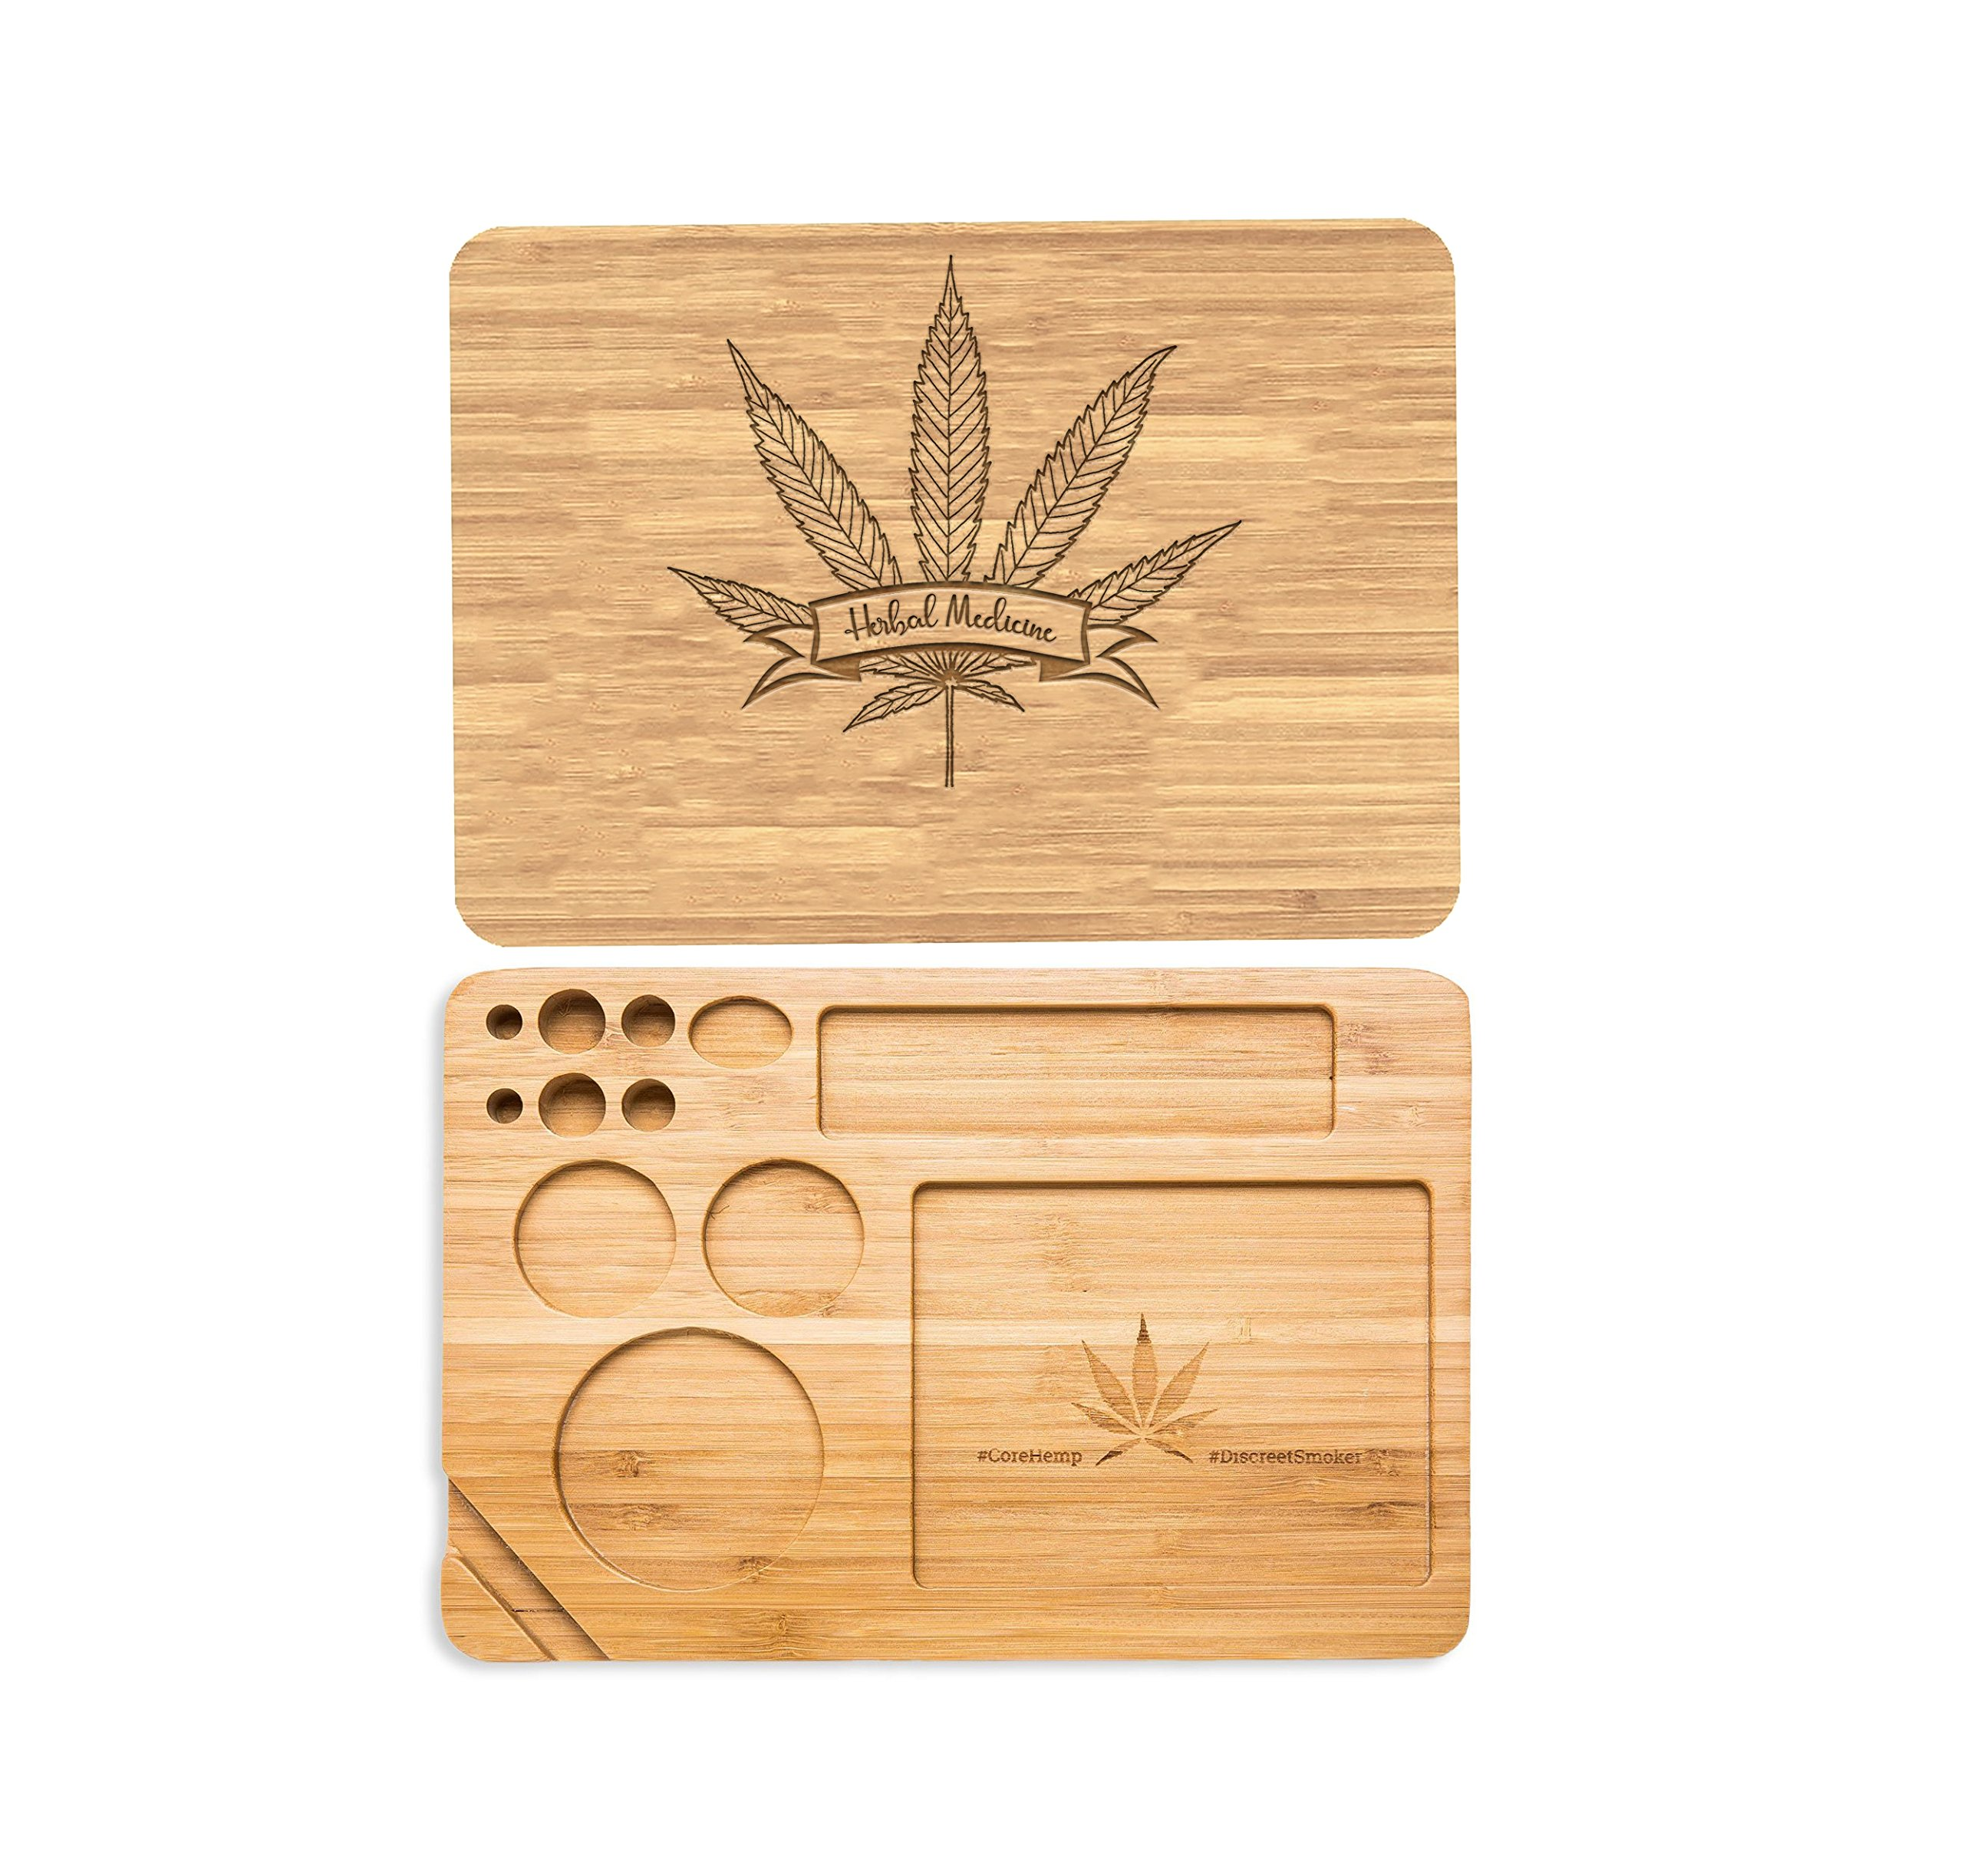 Laser Engraved Customized Personalized Bamboo Rolling Tray. Cut Out,for Rolling Tobacco Cigar Paper,Leaf,Medicinal Herb,Personalize The Back for Free- Herbal Medicine Leaf Design